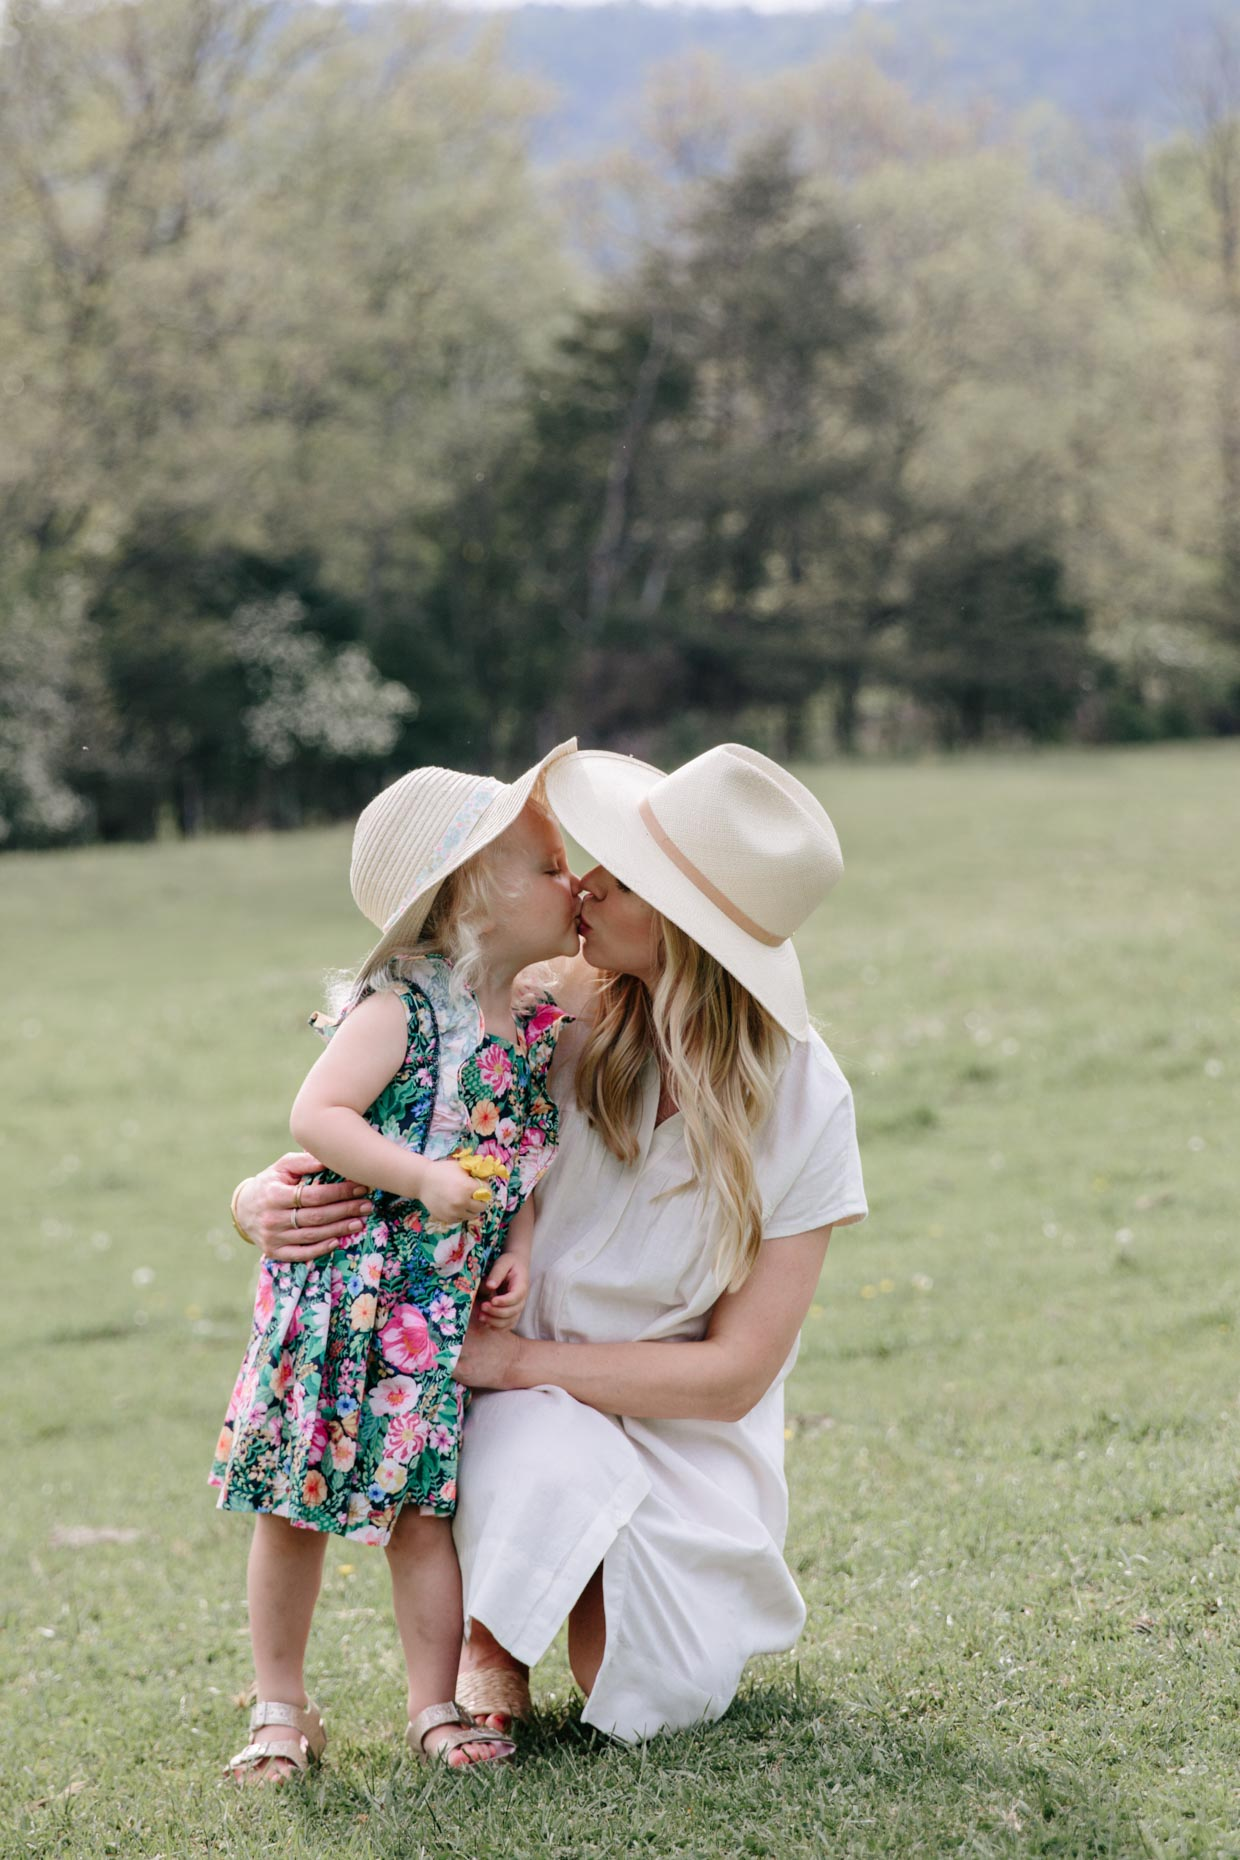 Meagan Brandon of Meagan's Moda shares Mommy and Me summer dress outfits for Mother's Day photo shoot